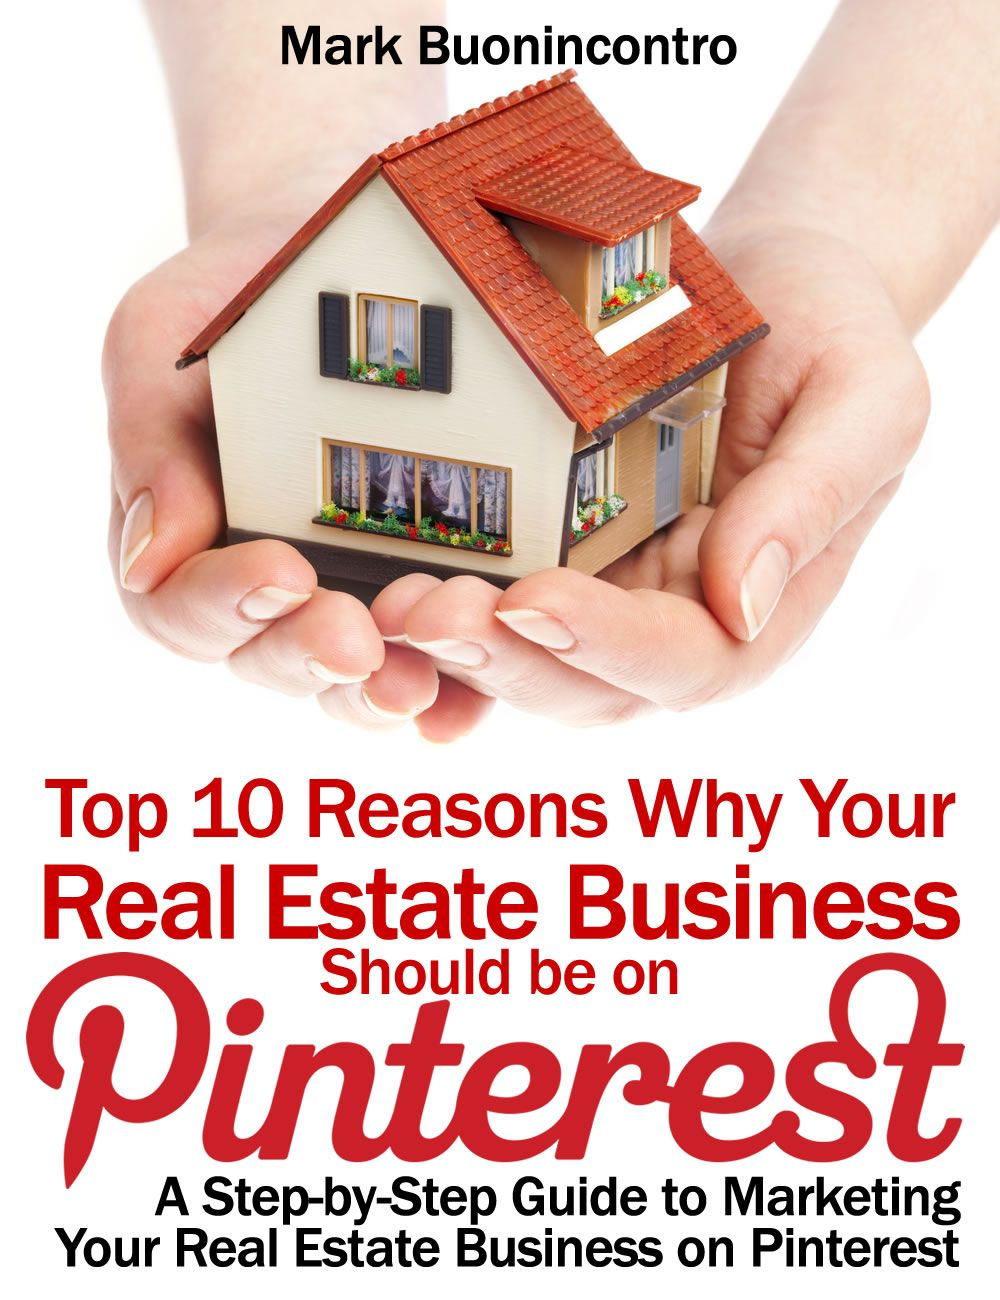 Pinterest Marketing For Real Estate Is A Complete Step By Step